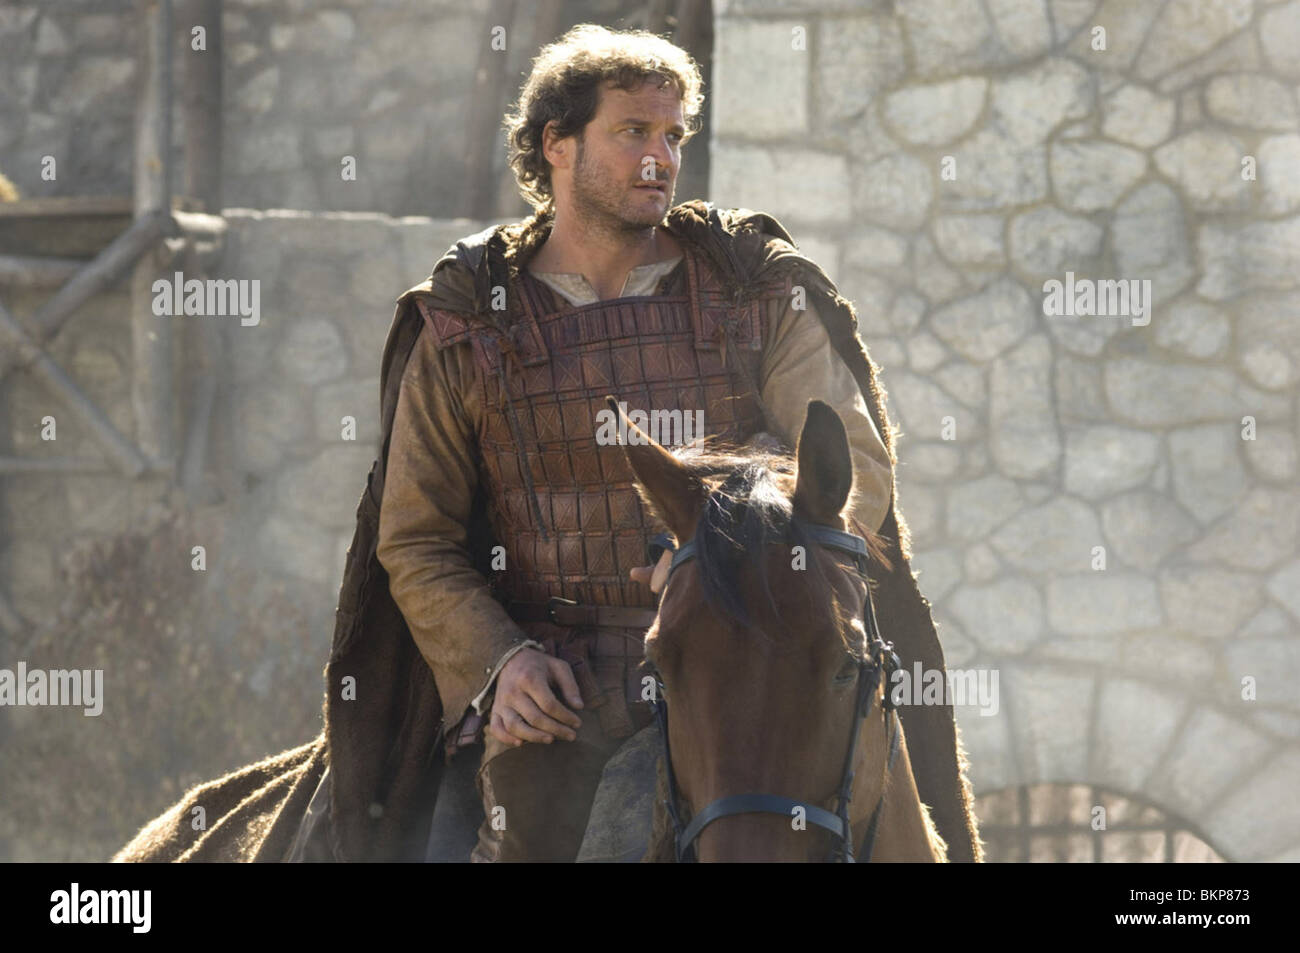 THE LAST LEGION (2007) COLIN FIRTH LLEG 001-04 - Stock Image